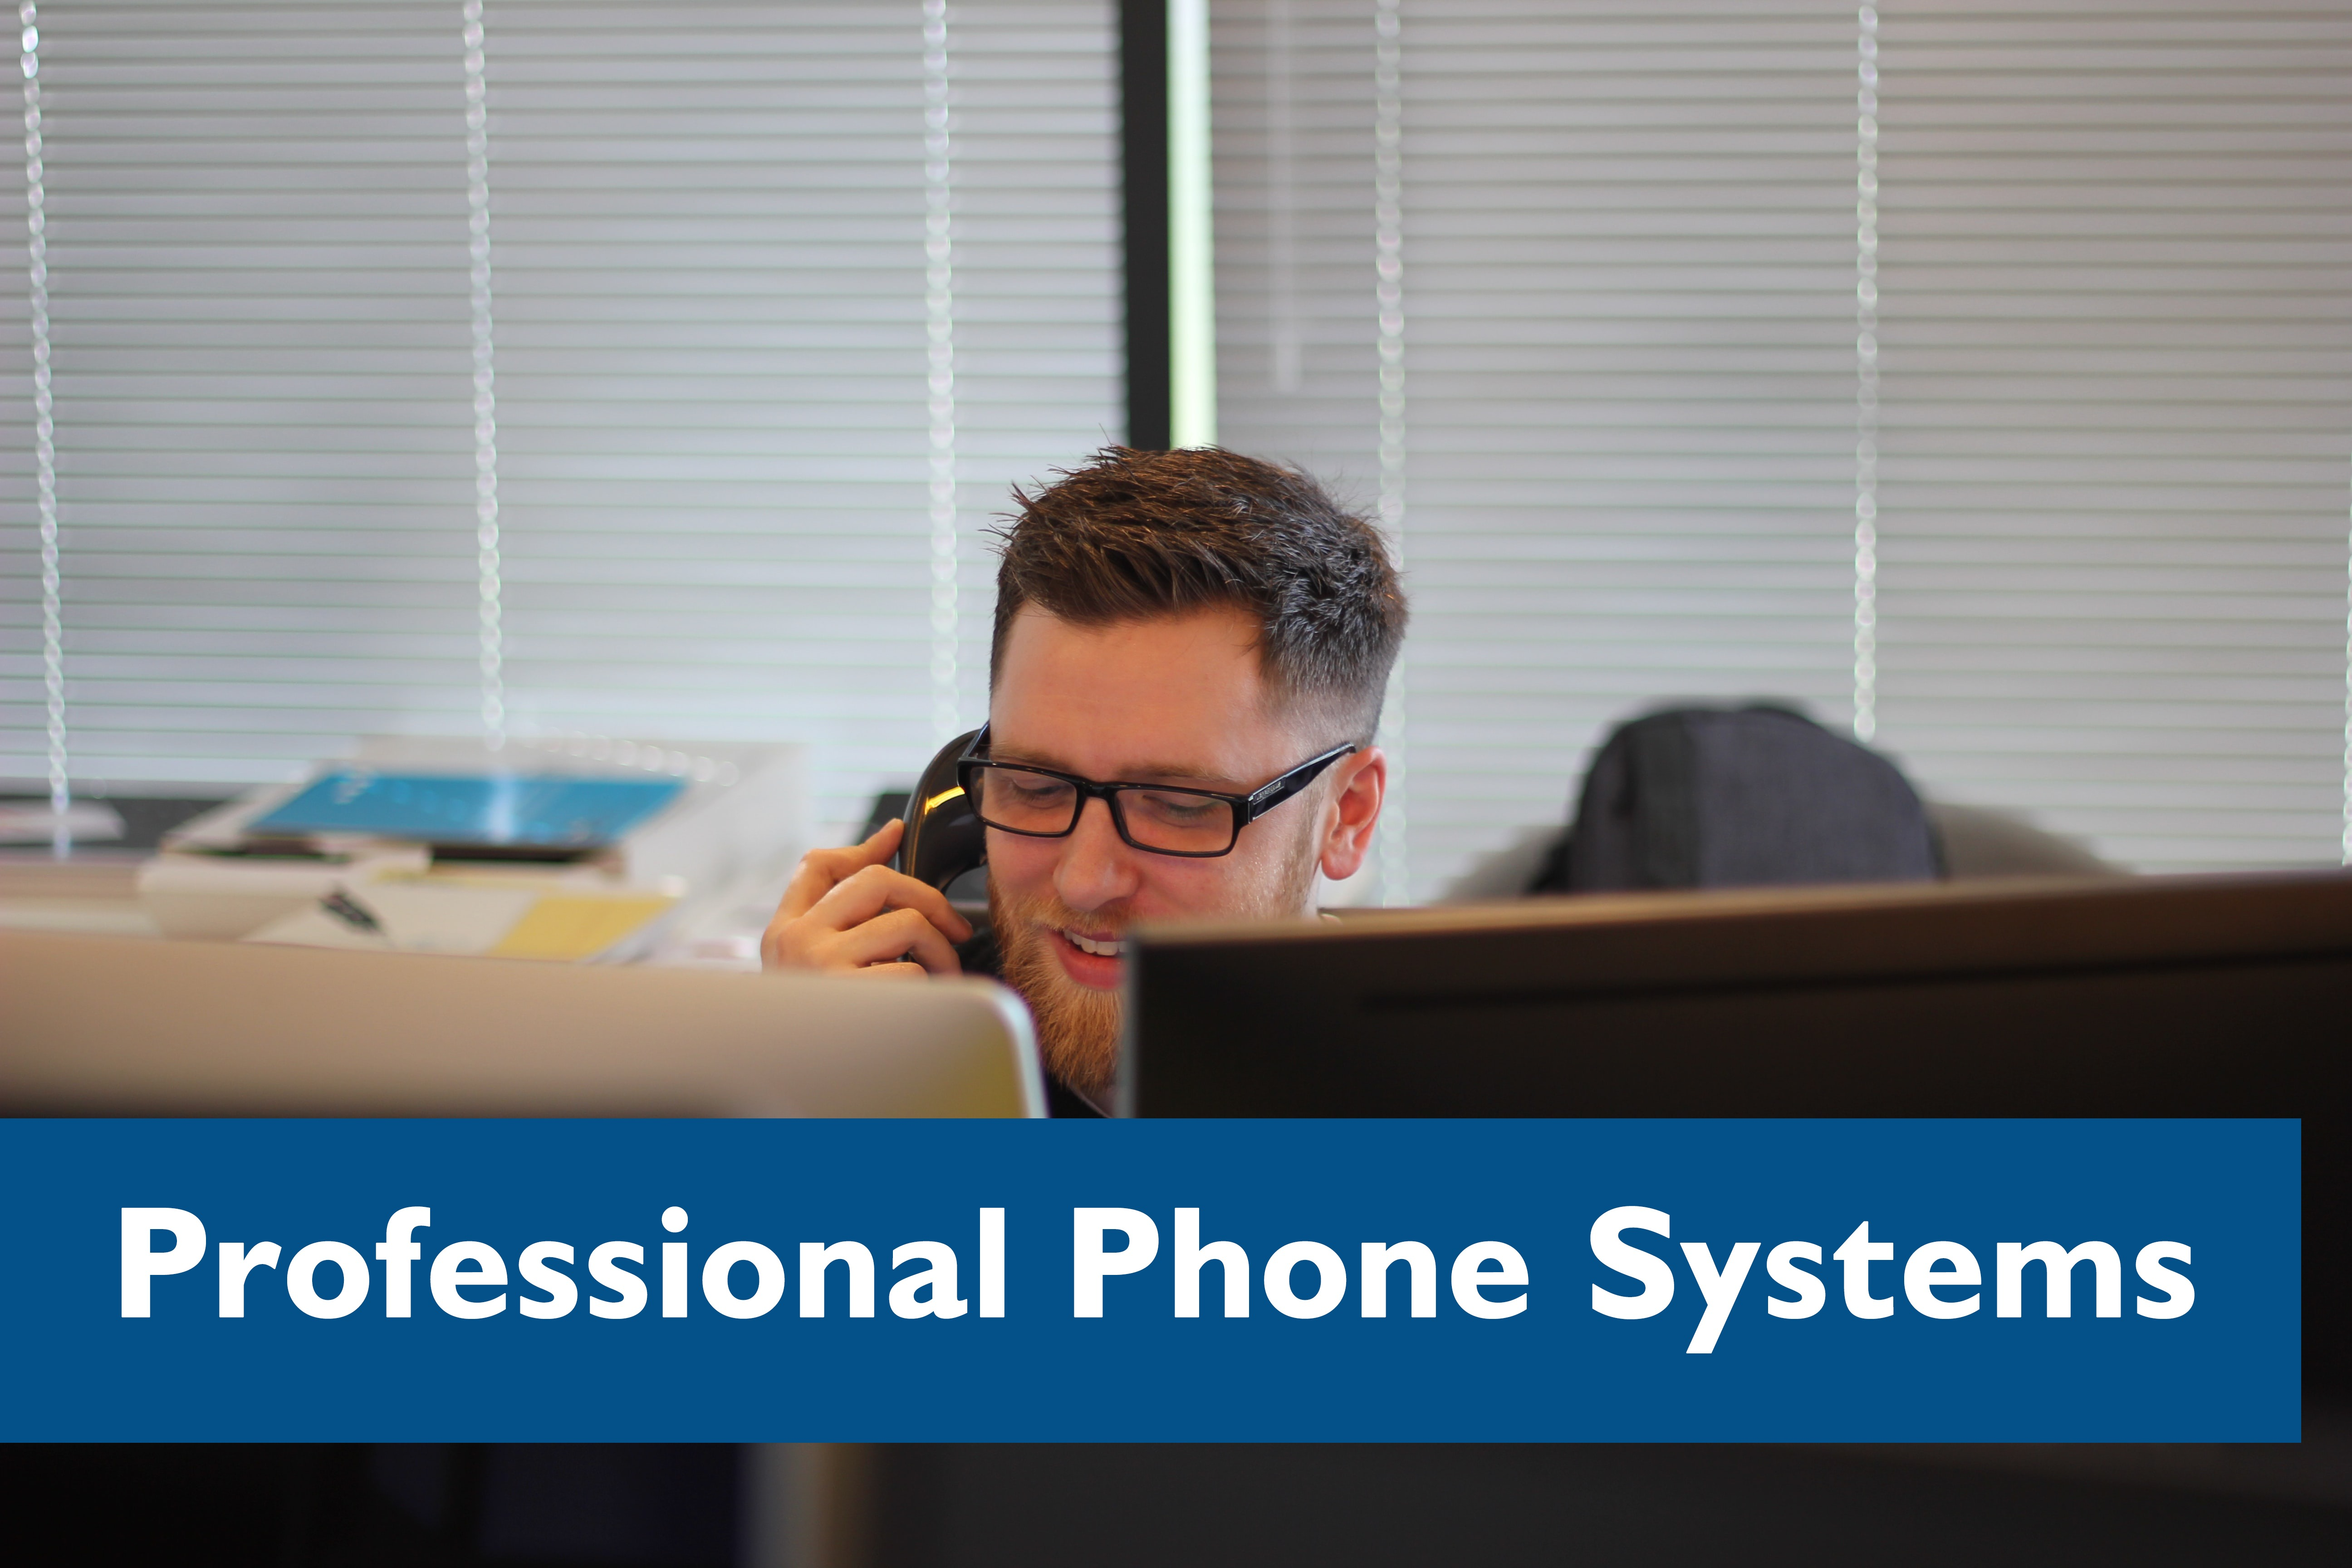 Professional Phone Systems